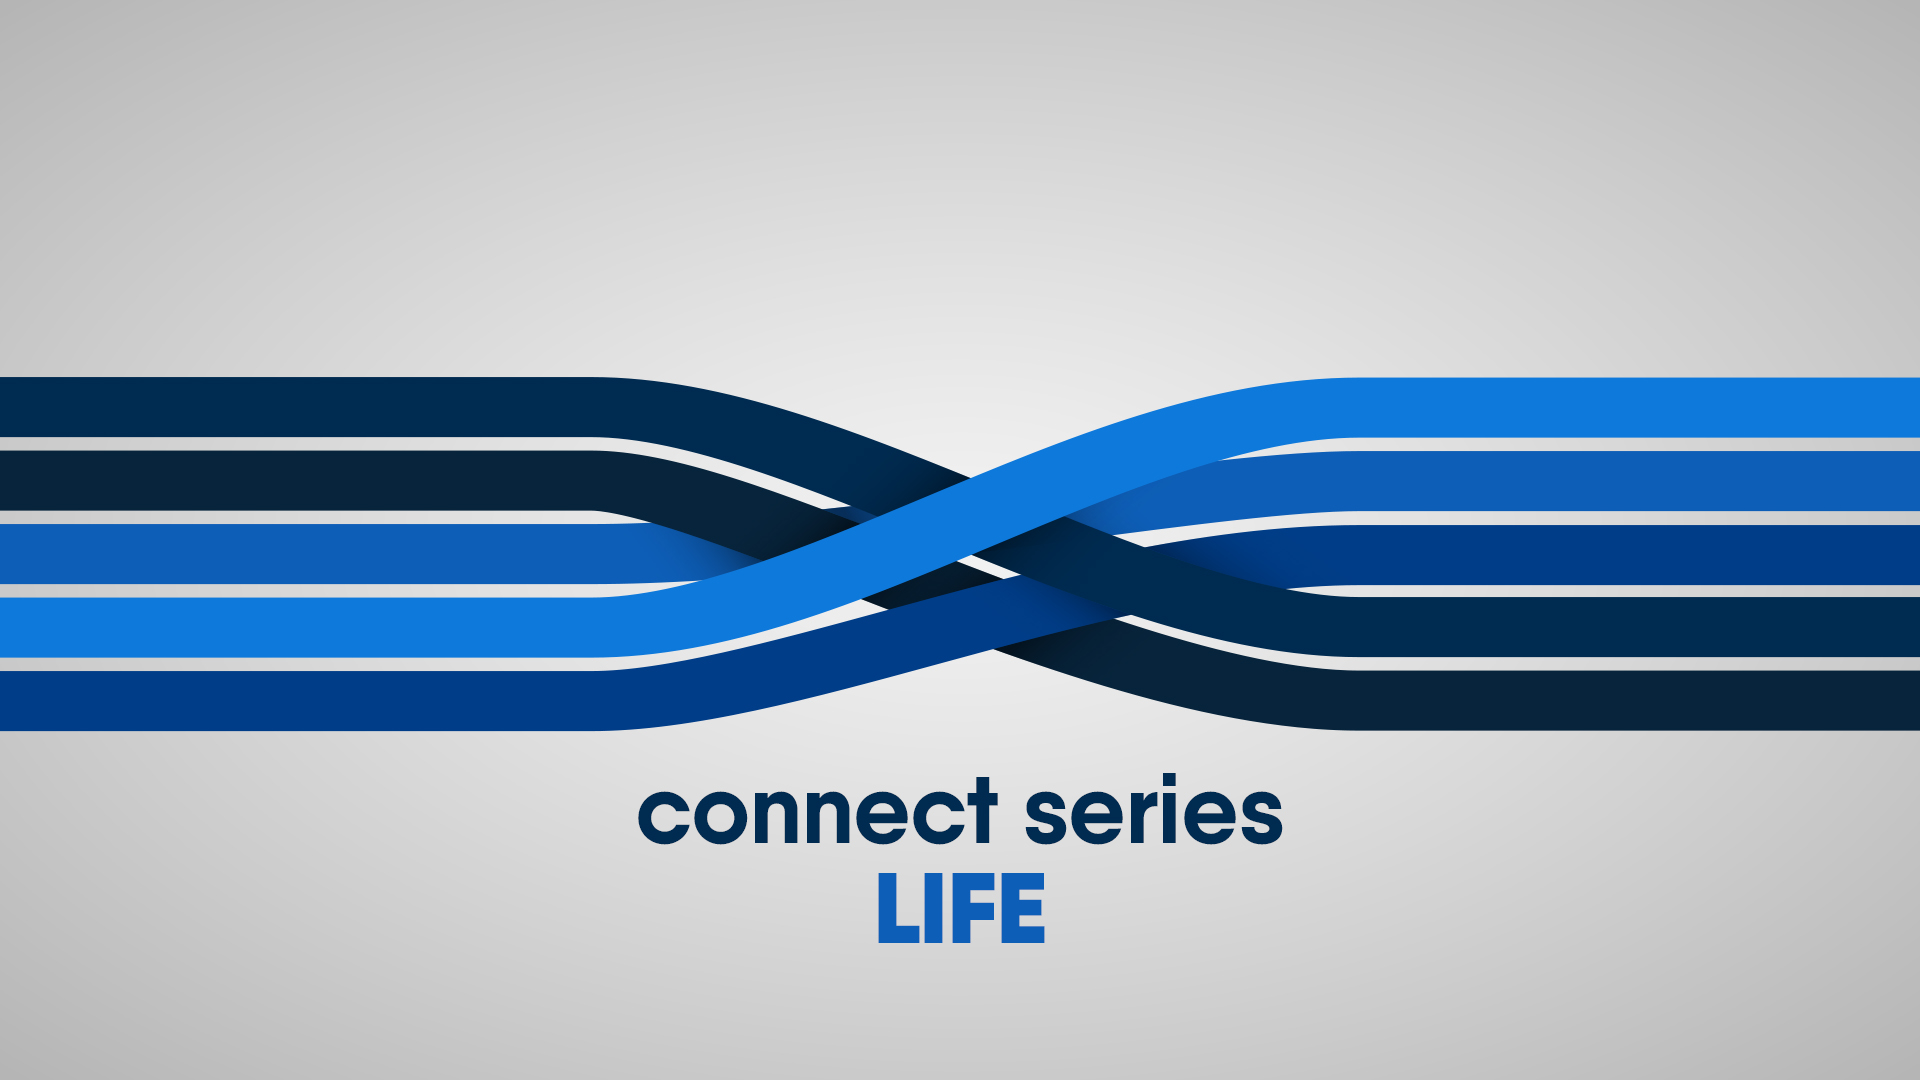 Connect Series - Life